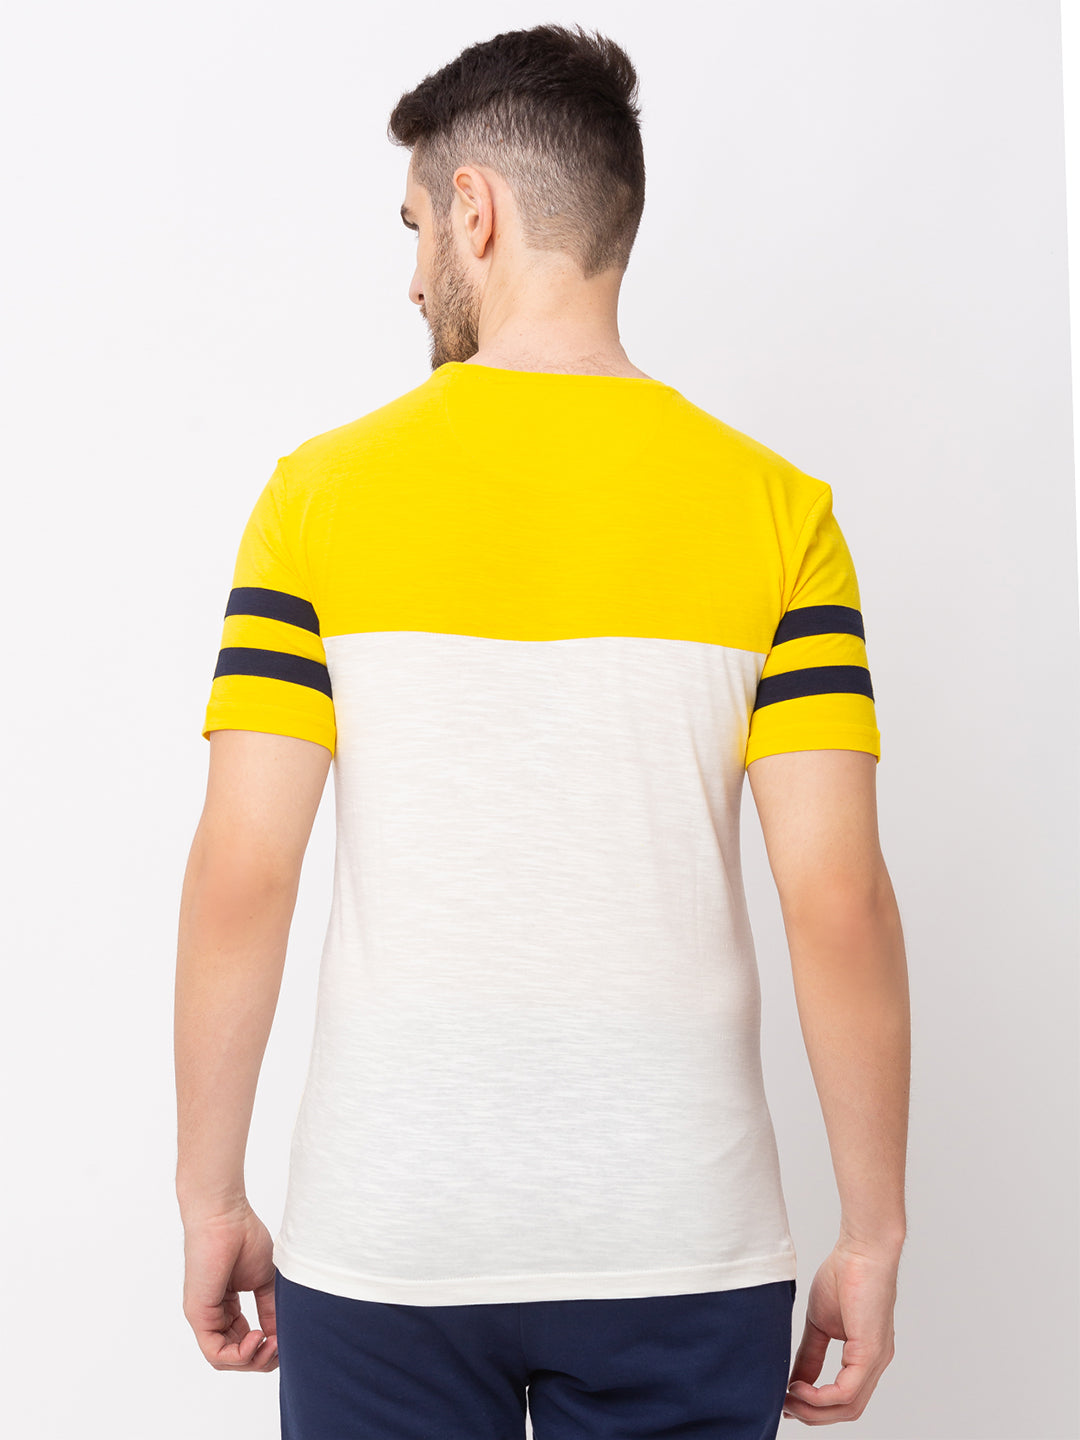 Globus Yellow Printed T-Shirt-3